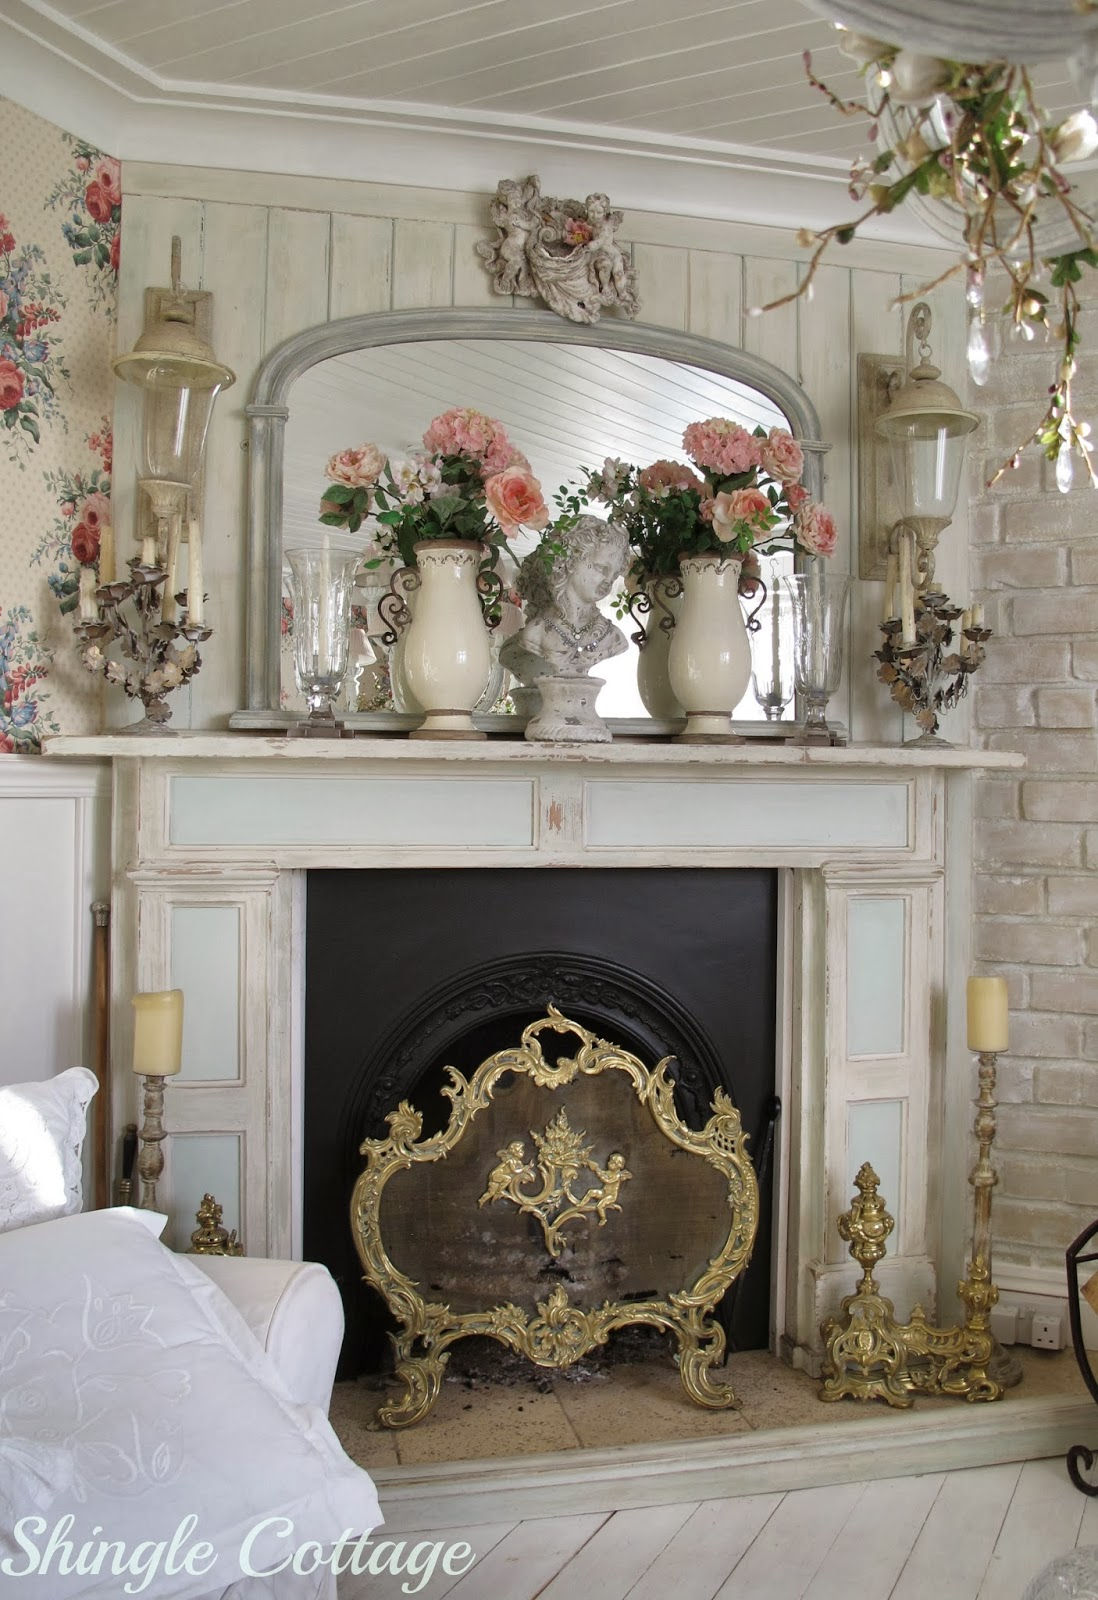 Bungalow Fireplace Mantel Fire Places On Pinterest Fireplaces Mantles And Mantels